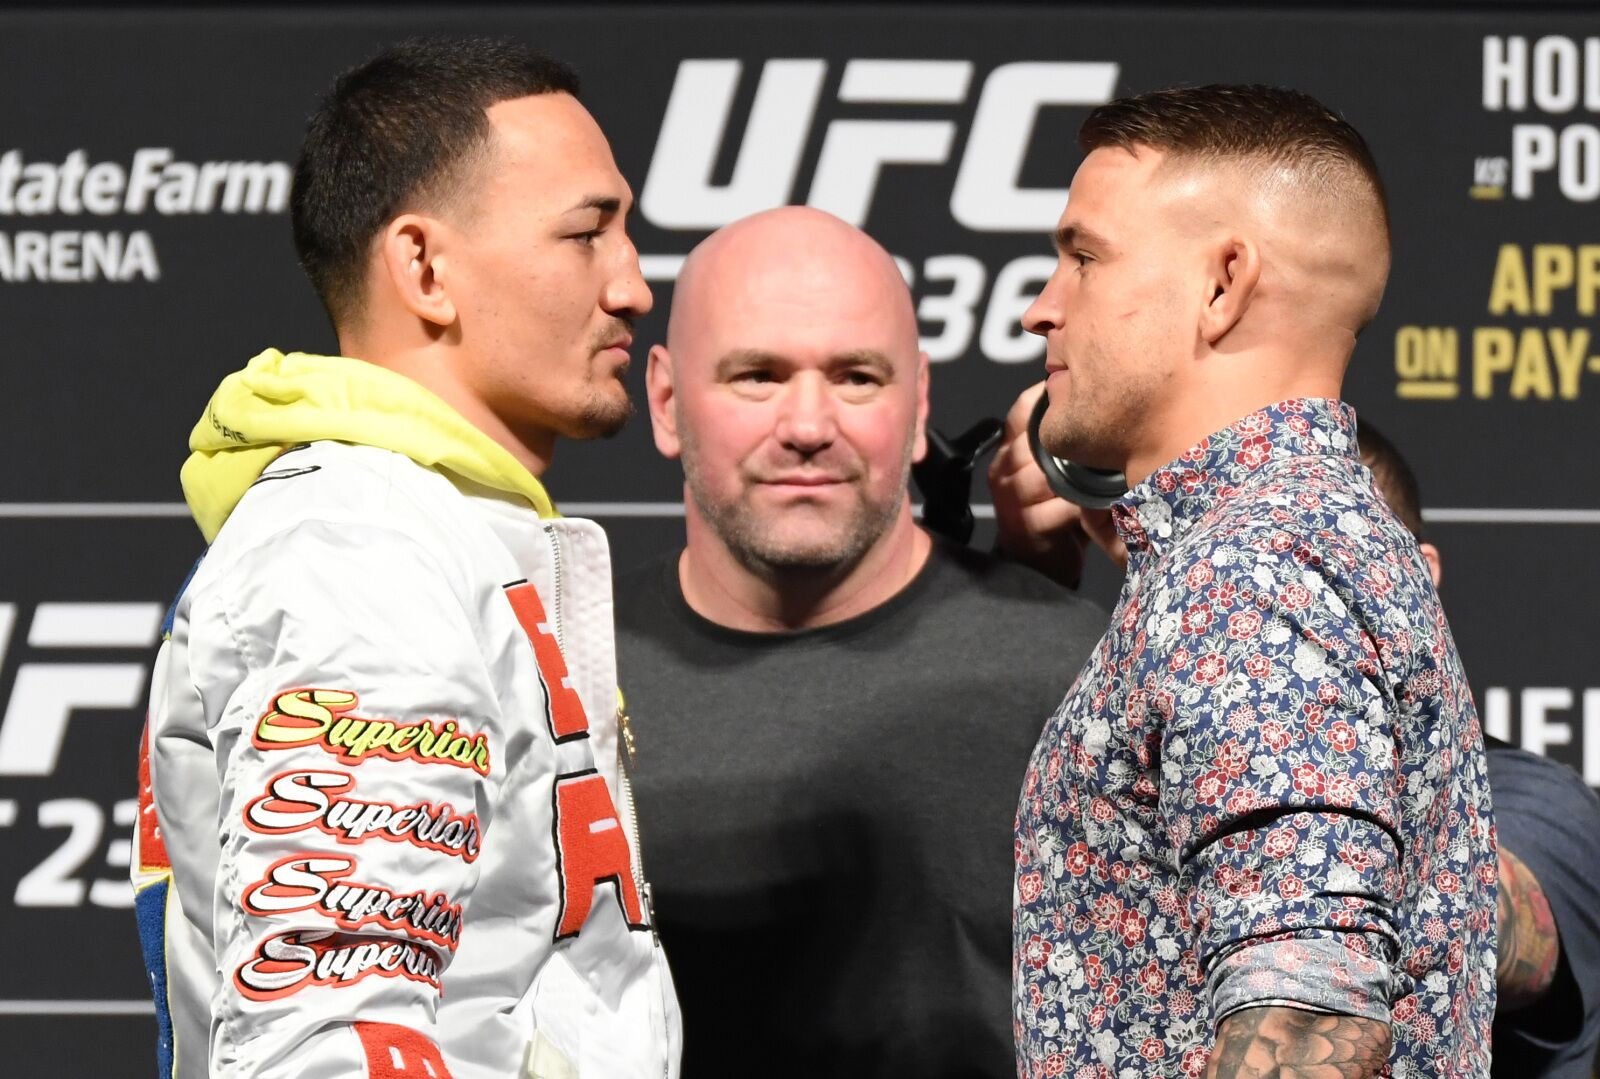 LAS VEGAS, NV - MARCH 1: (L-R) Opponents Max Holloway and Dustin Poirier face off during the UFC 236 Press Conference inside T-Mobile Arena on March 1, 2019 in Las Vegas, Nevada. (Photo by Jeff Bottari/Zuffa LLC/Zuffa LLC via Getty Images)